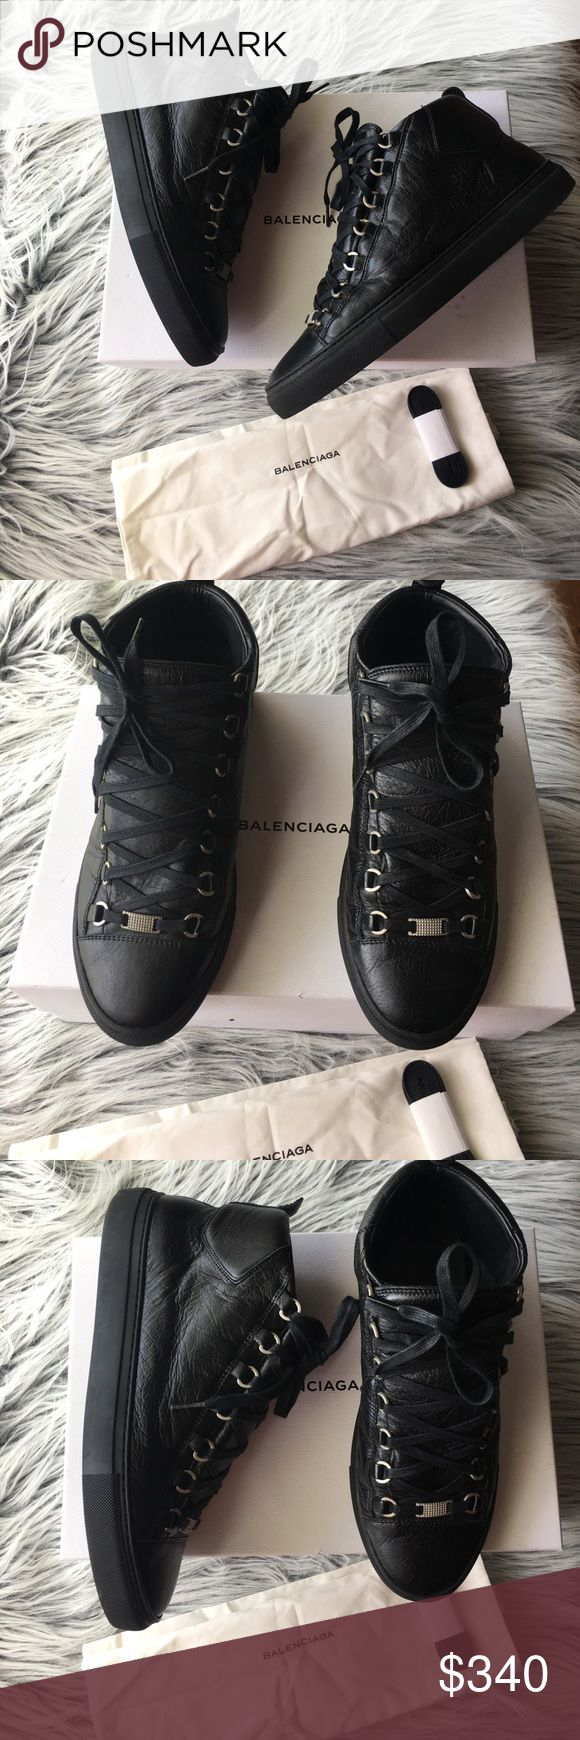 🤑Men's Balenciaga Sneackers🤑 EUC🤑Will ship asap🤑No exchange or returns🤑All sales are final🤑Any questions?Just ask🤑 Balenciaga Shoes Sneakers